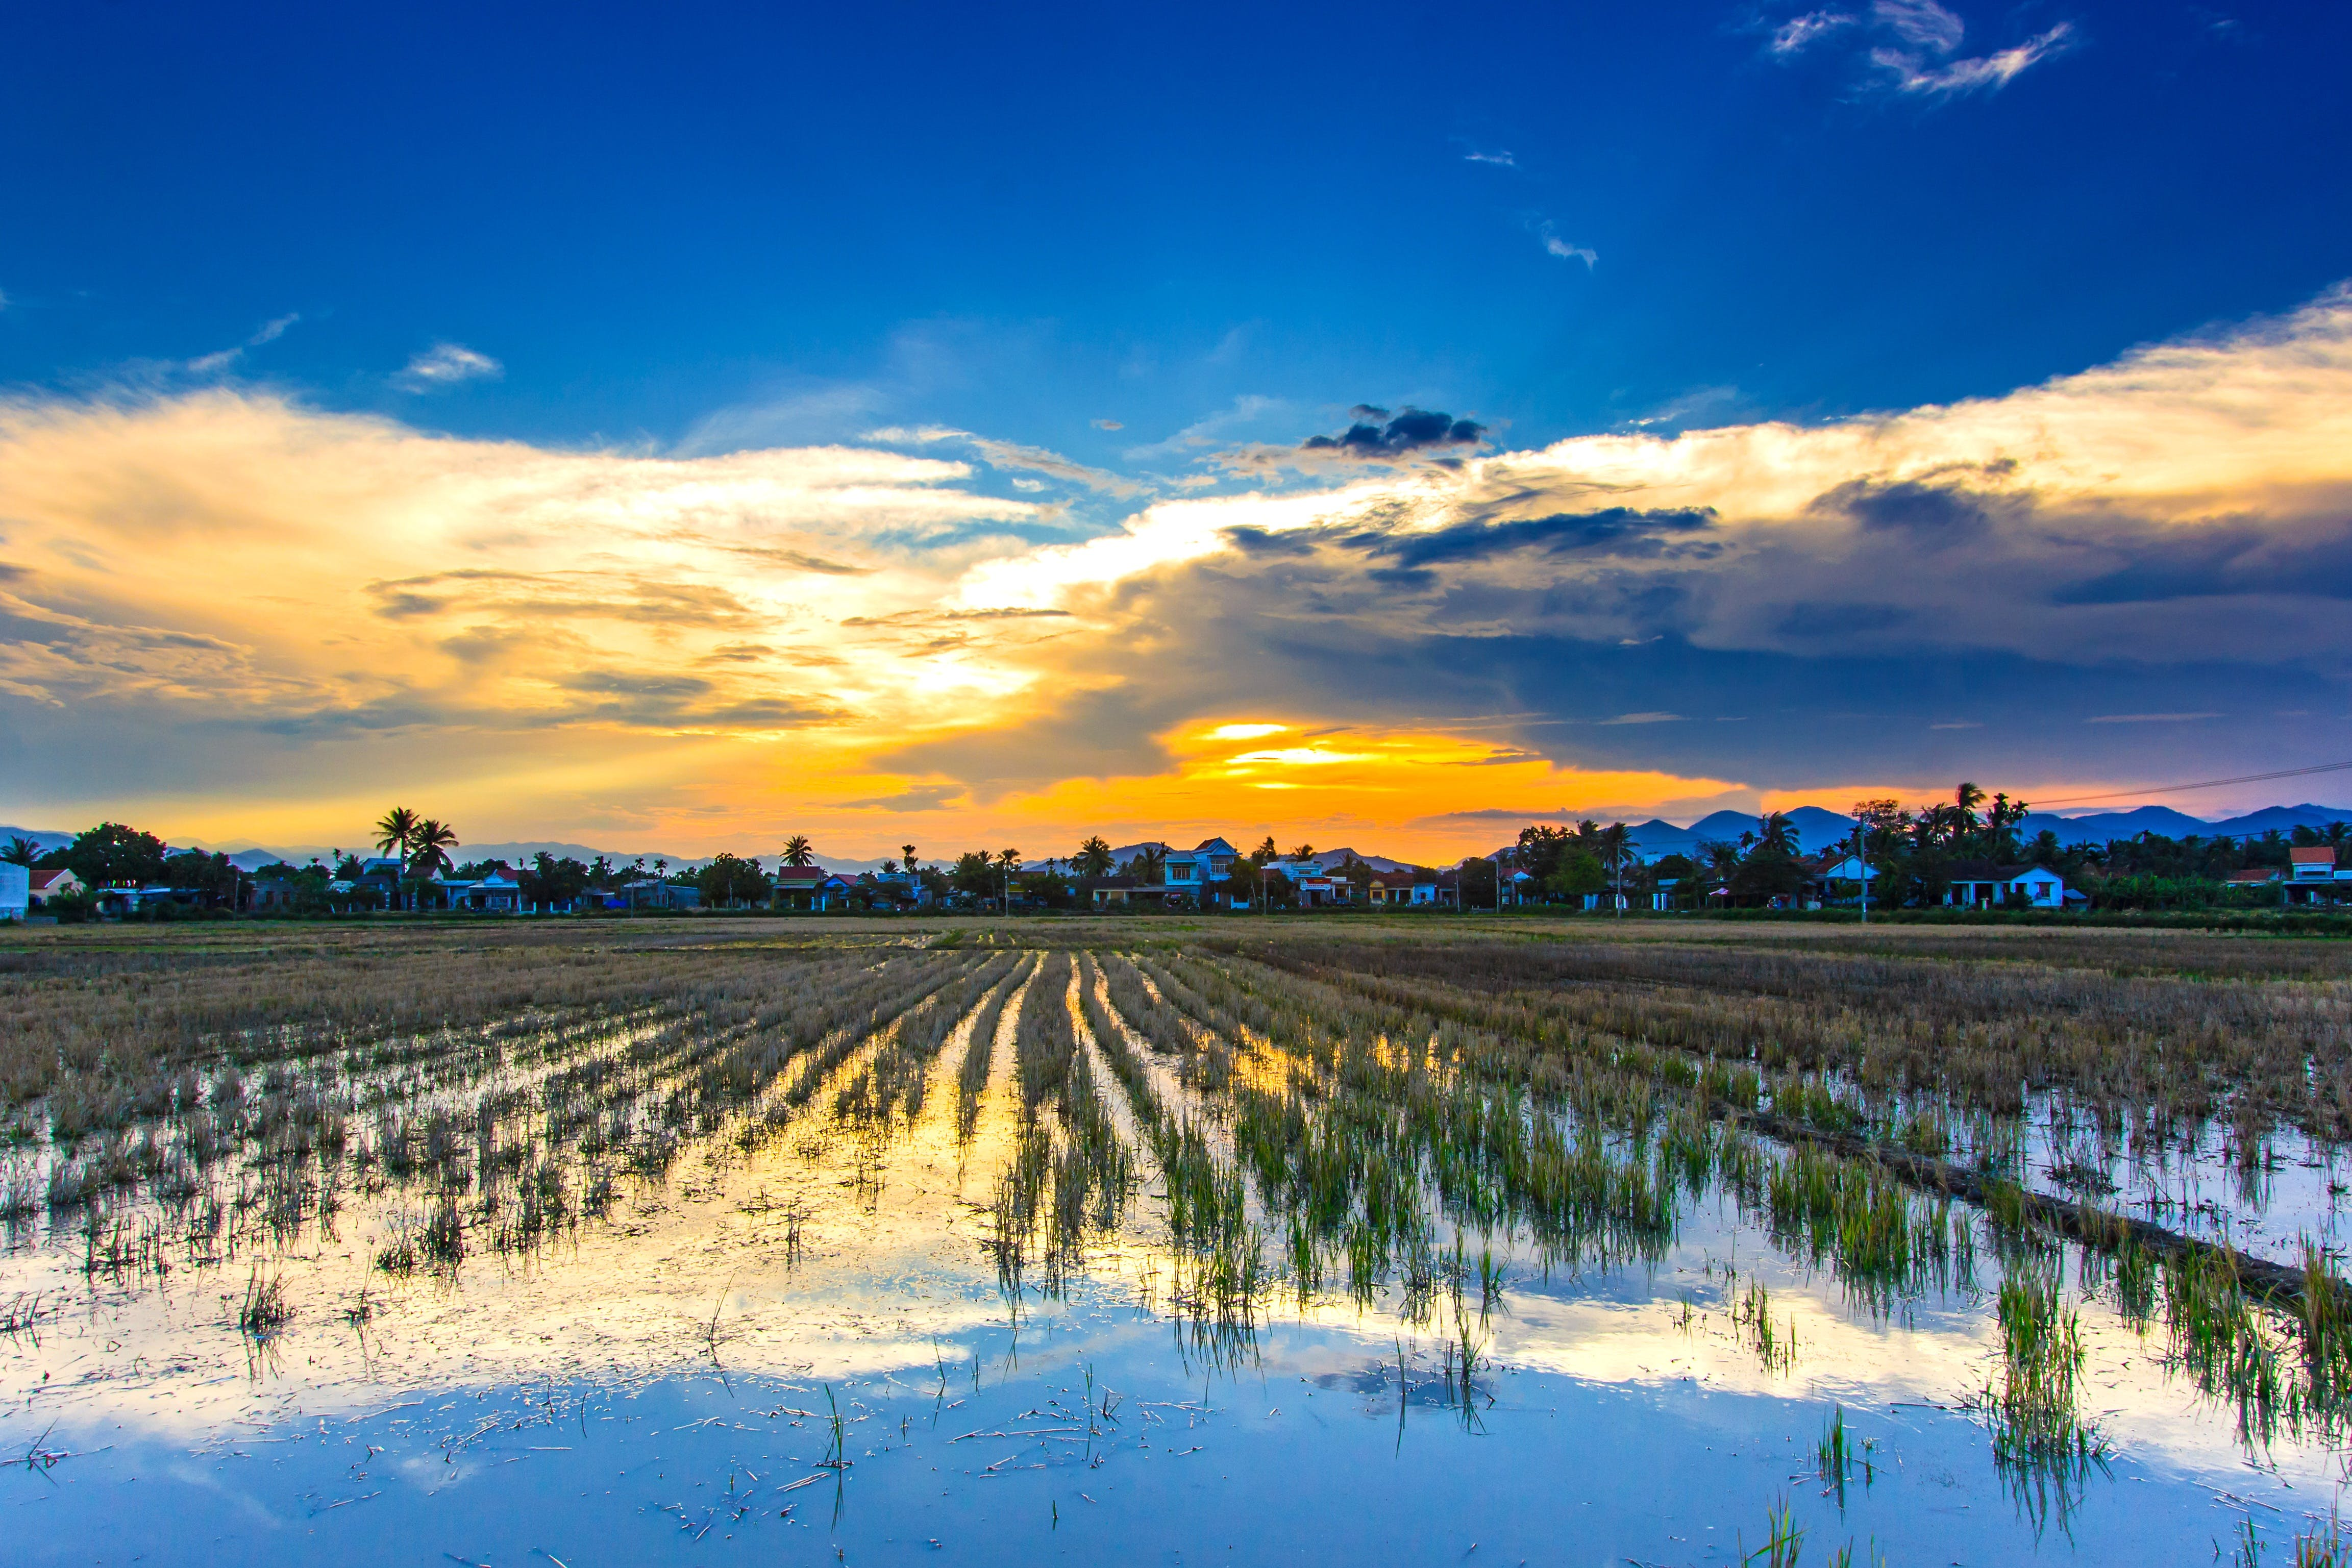 Landscape Photography of Rice Field during Golden Hour